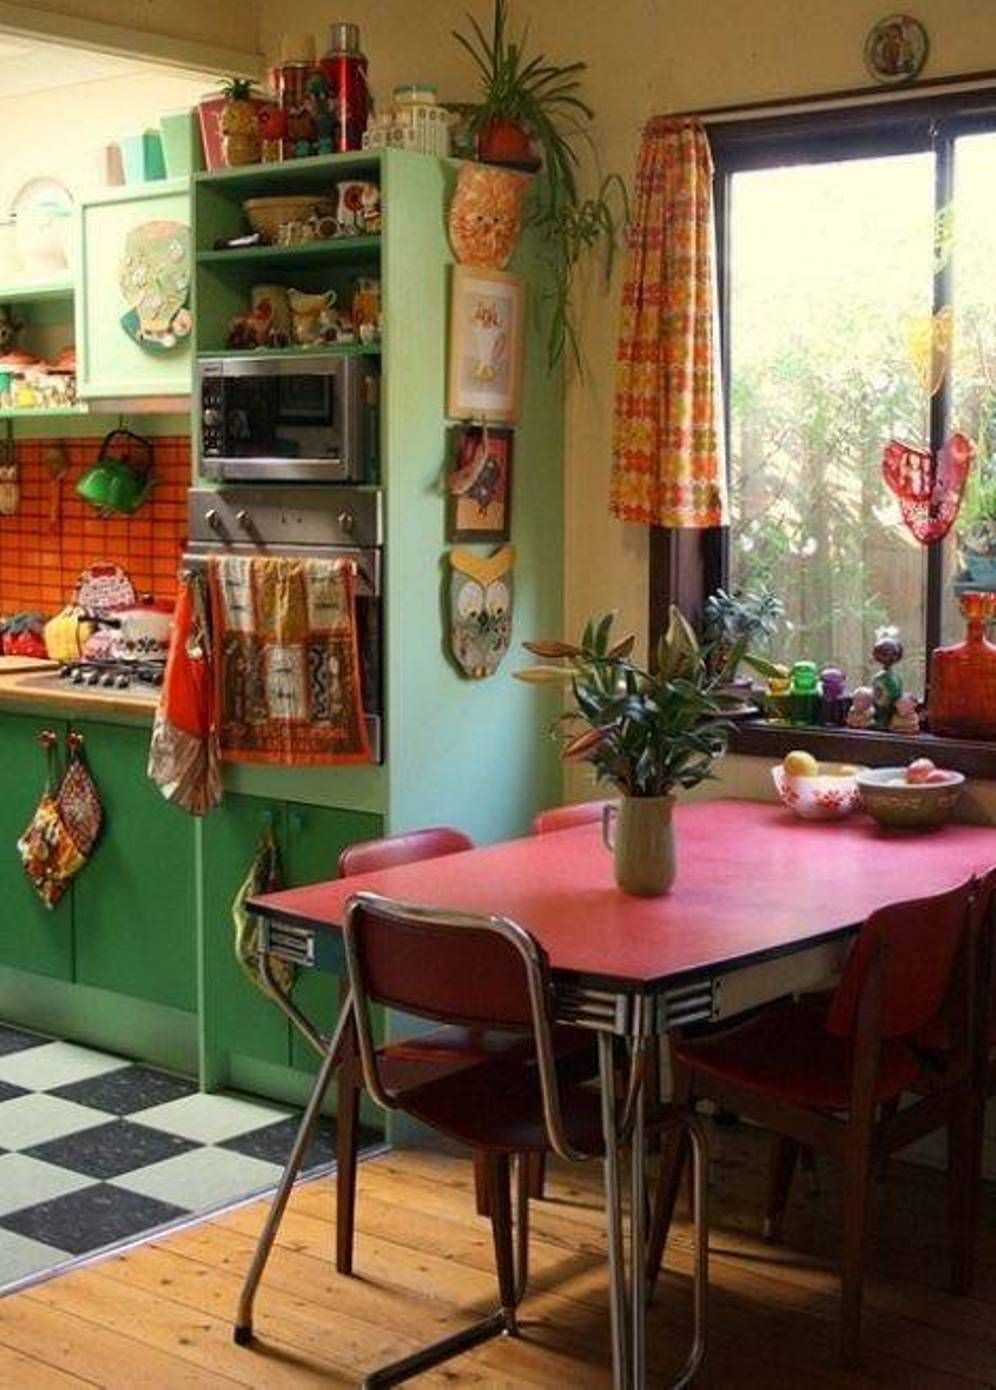 Vintage home interior pictures interior bohemian style - Retro home design ...